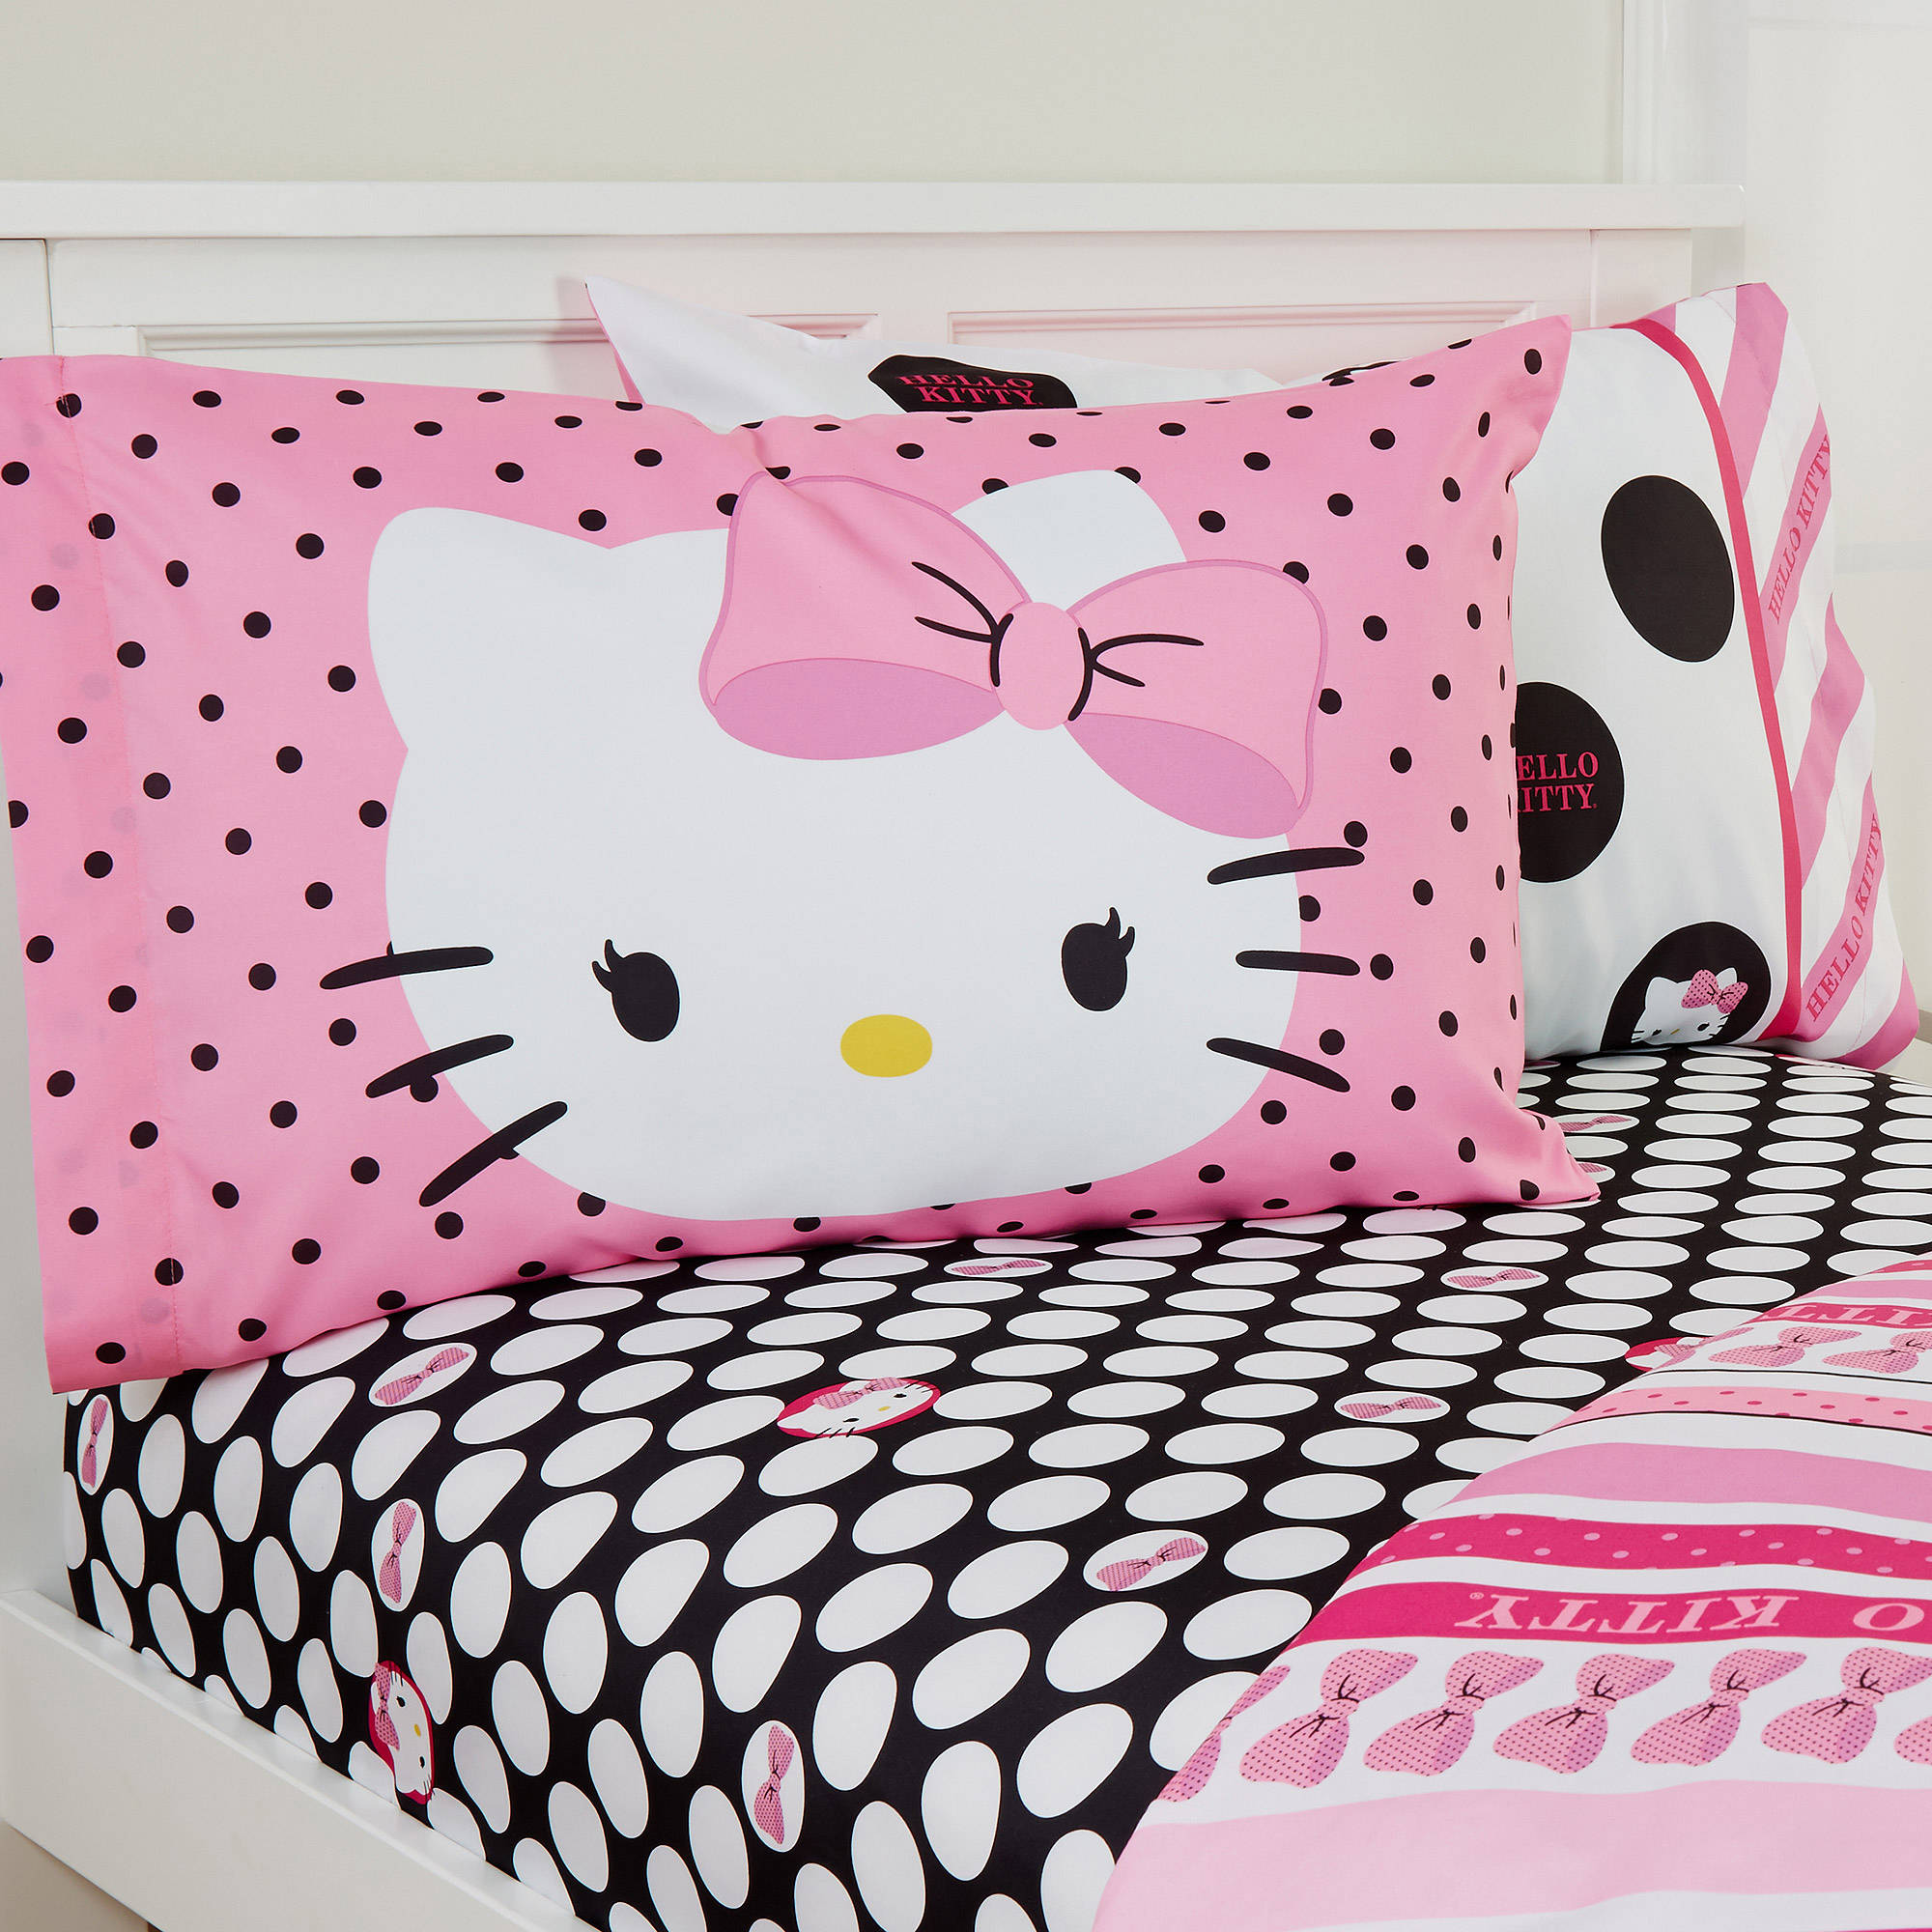 Pink hello kitty bedsheet - Pink Hello Kitty Bedsheet 33